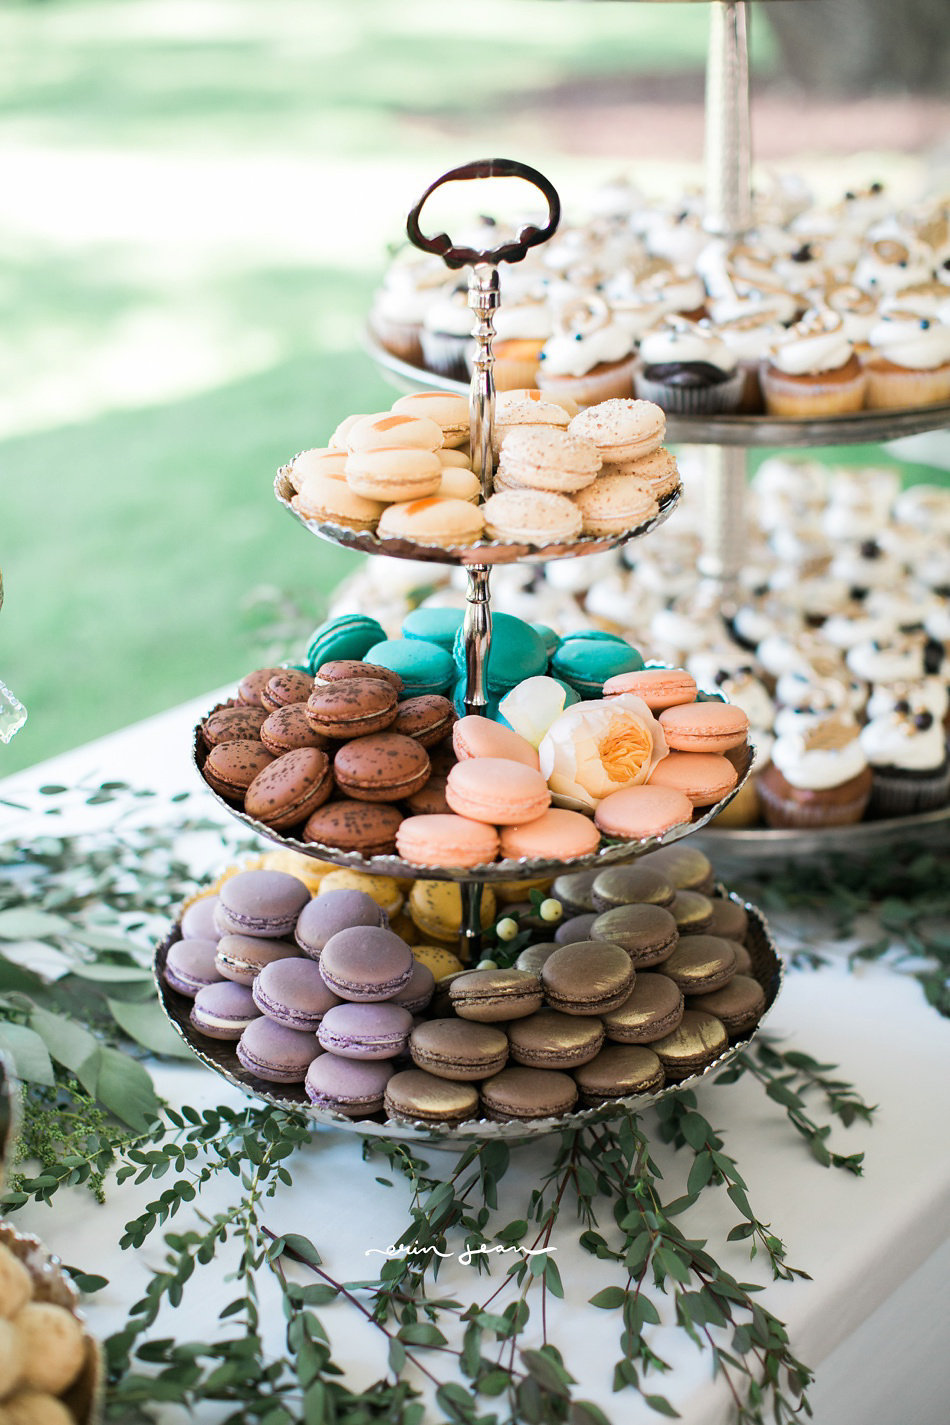 Wedding Cake Alternatives, wedding day dessert options